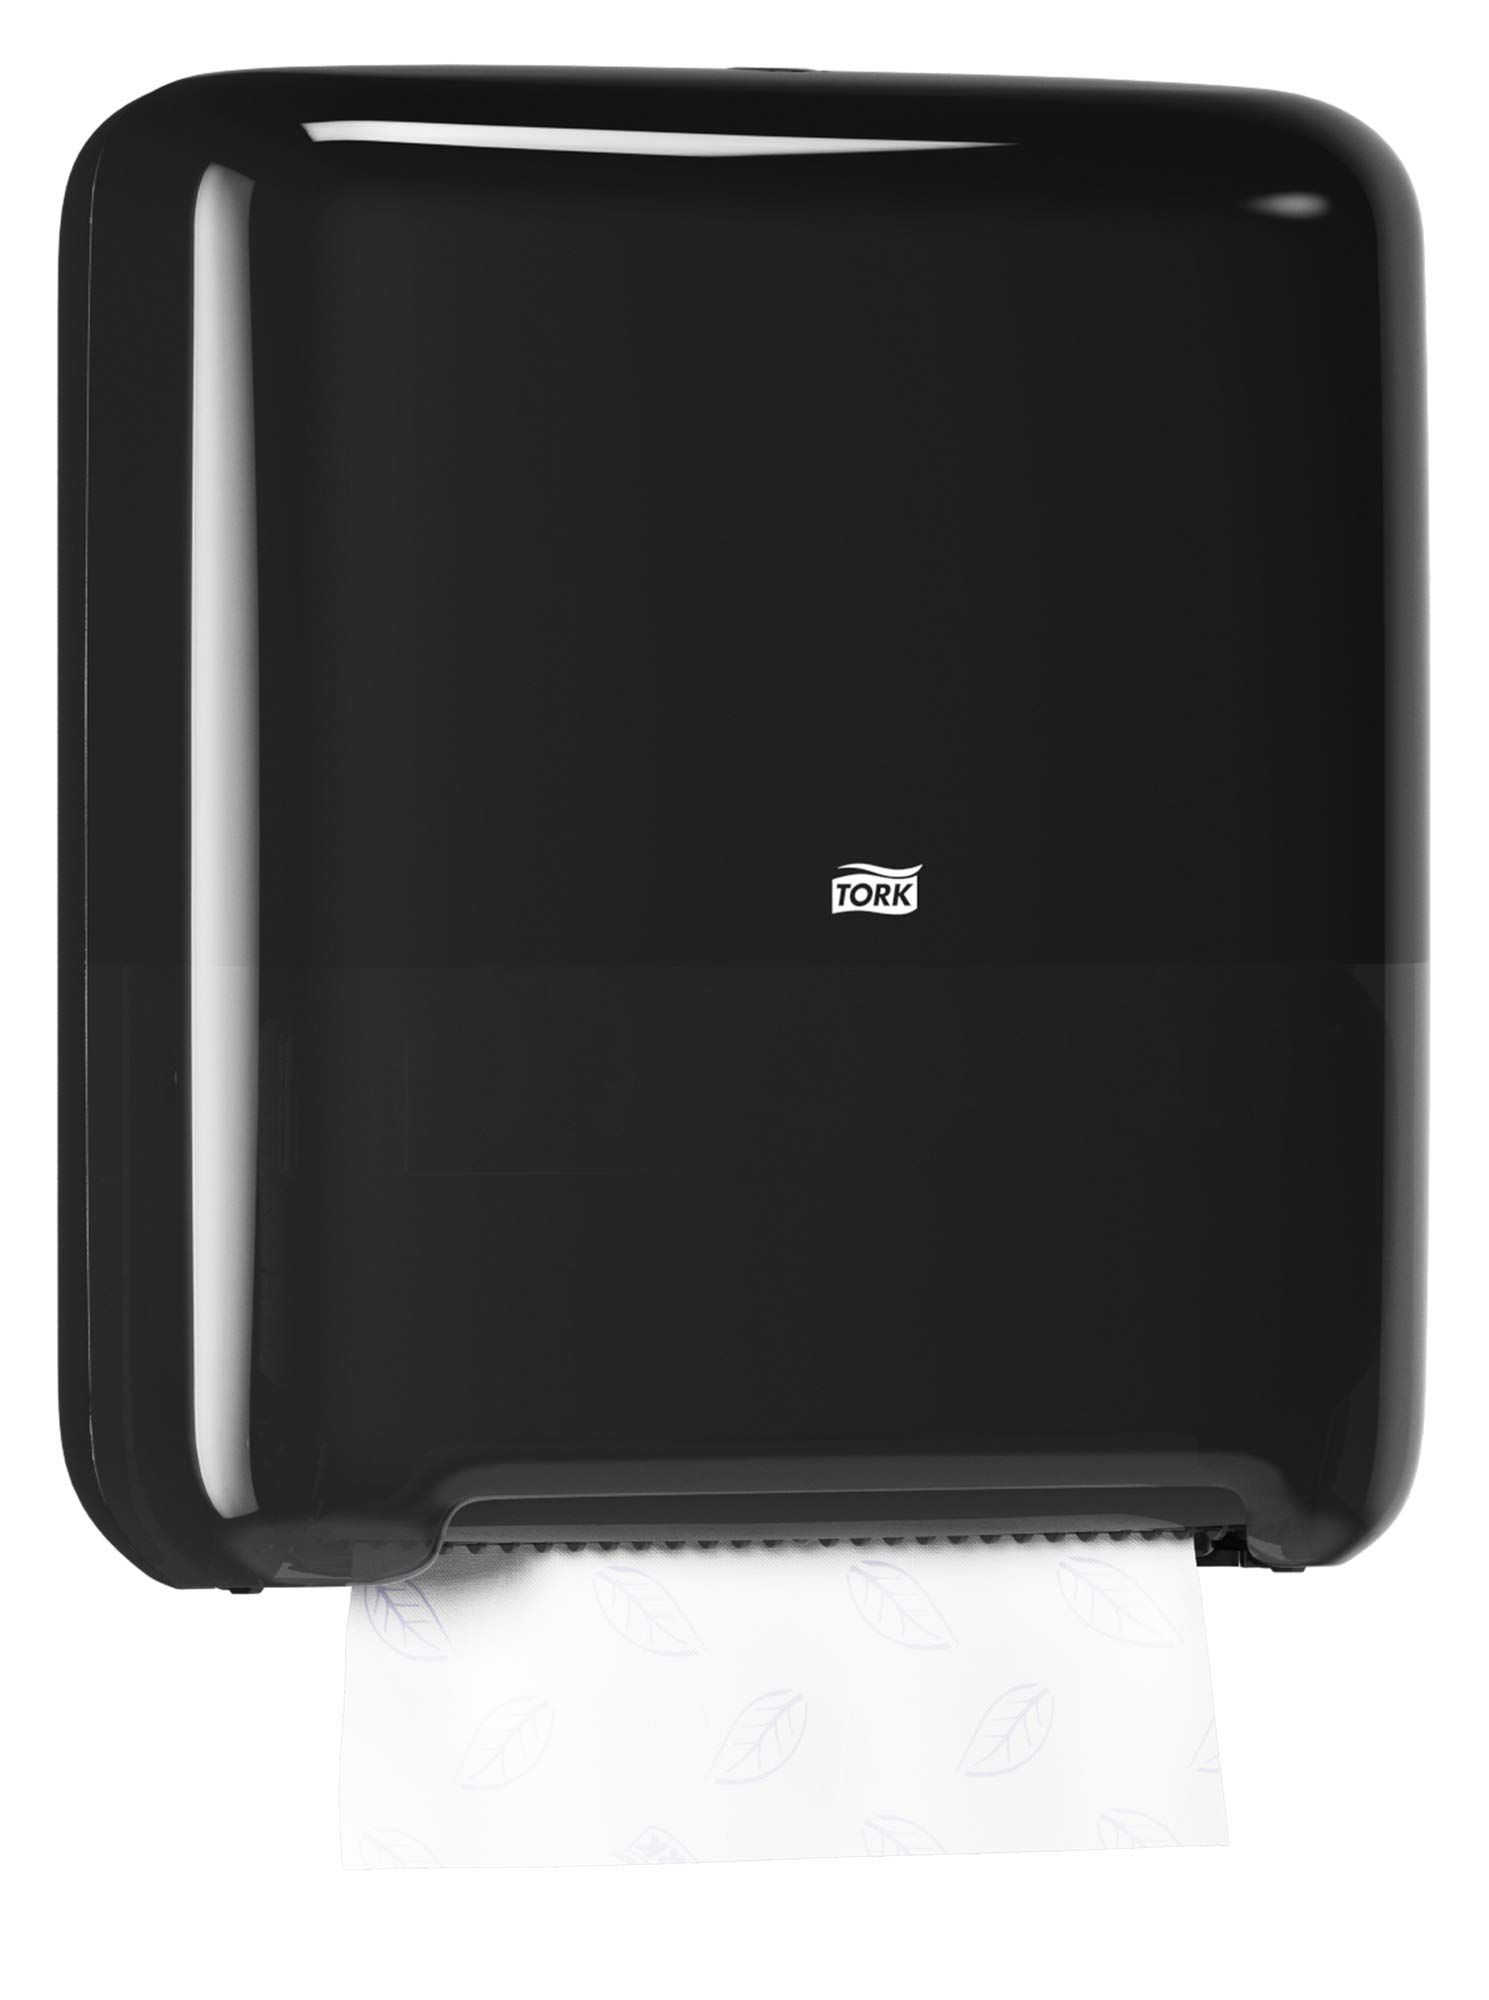 Tork 5510282 Elevation Matic Paper Hand Towel Roll Dispenser, 14.65'' Height x 13.2'' Width x 8.1'' Depth, Black (Case of 1 Dispenser) by Tork (Image #10)